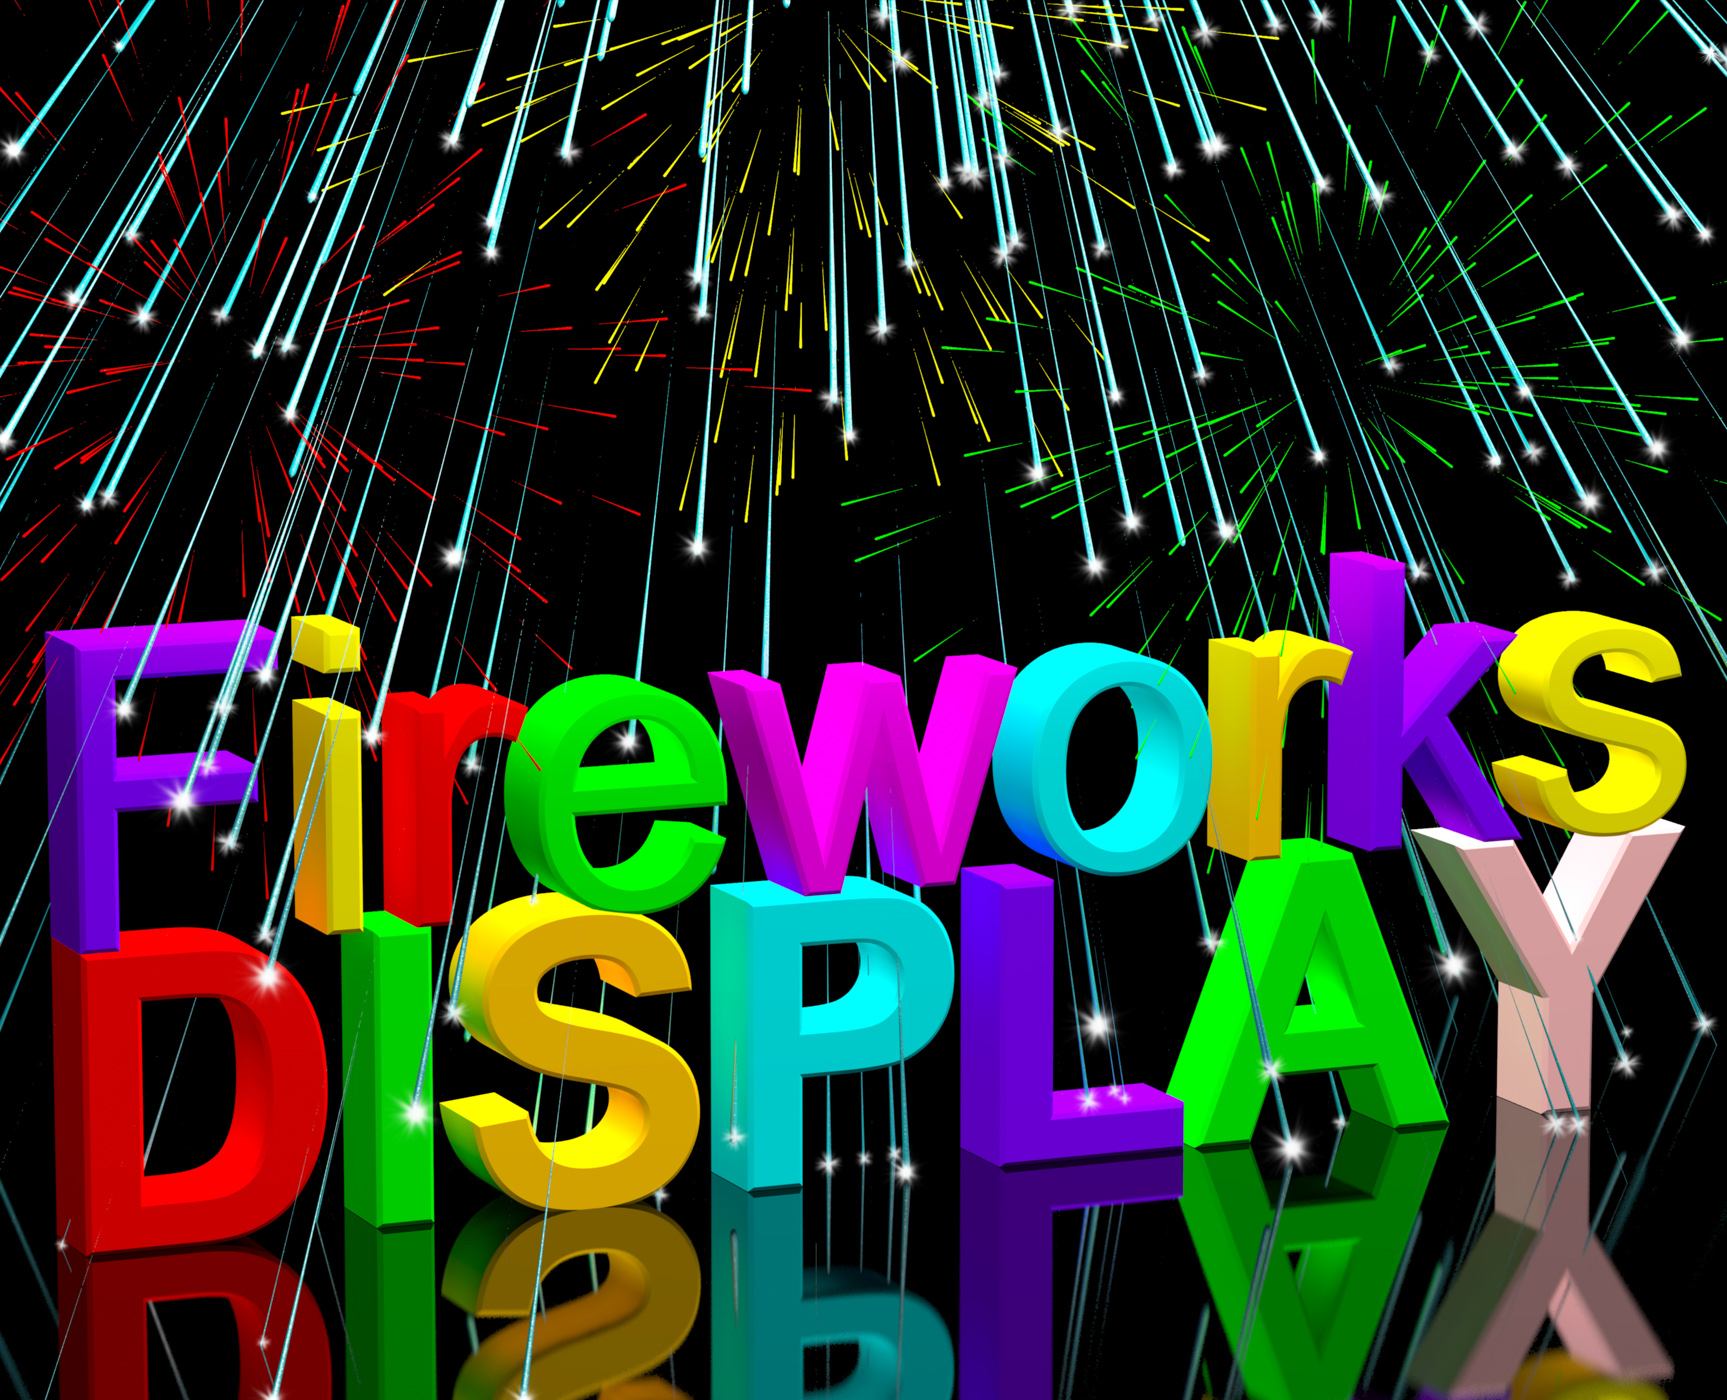 Exploding fireworks display for new years or independance celebrations photo